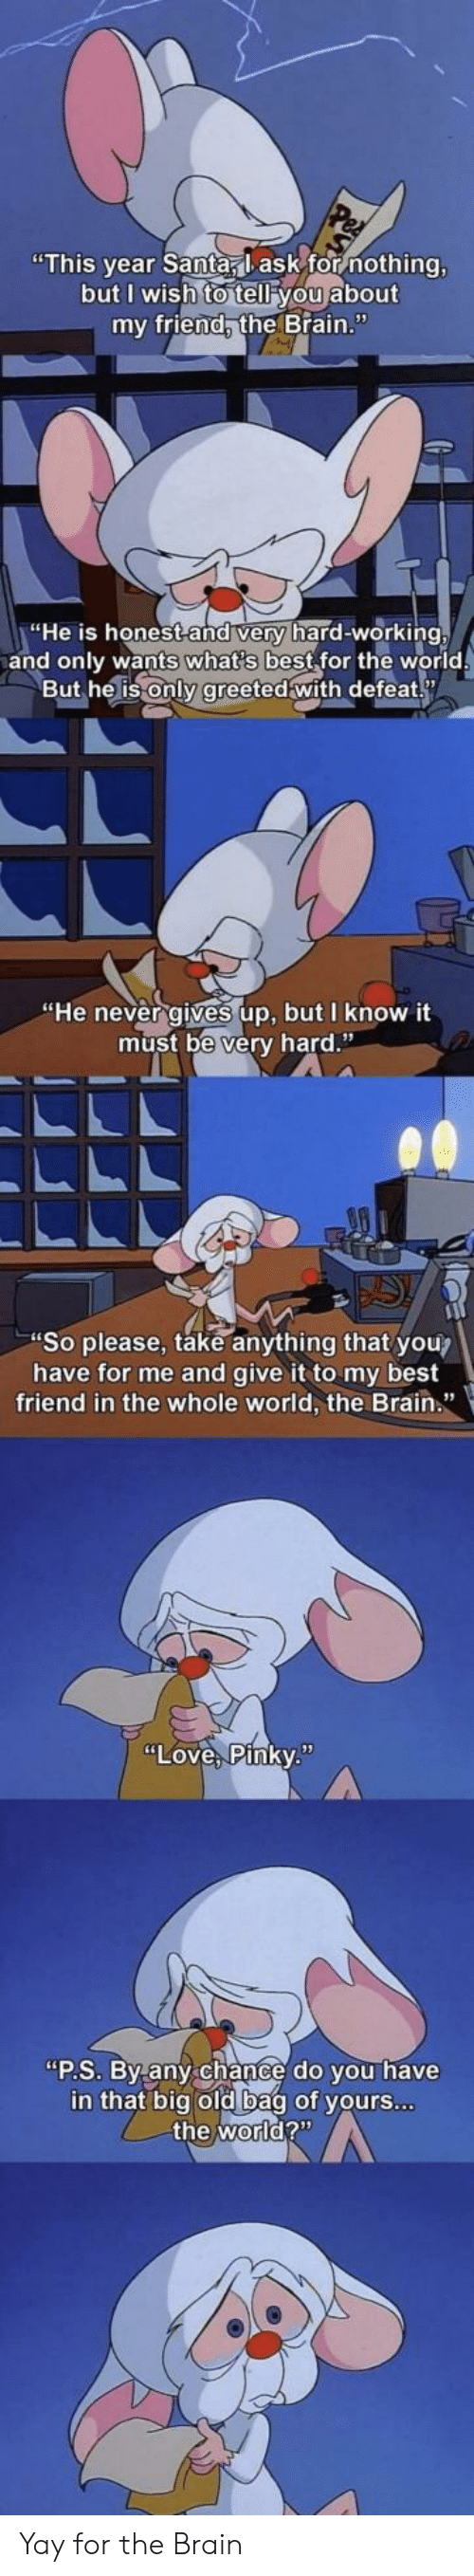 """the brain: """"This year Santa, lask for nothing,  but I wish to tell you about  my friend, the Brain.""""  """"He is honest and very hard-working,  and only wants what's best for the world  But he is only greeted with defeat  """"He never gives up, but I know it  must be very hard.""""  """"So please, take anything that you?  have for me and give it to my best  friend in the whole world, the Brain.""""  """"Love, Pinky.""""  """"P.S. By any chance do you have  in that big old bag of yours...  the world?"""" Yay for the Brain"""